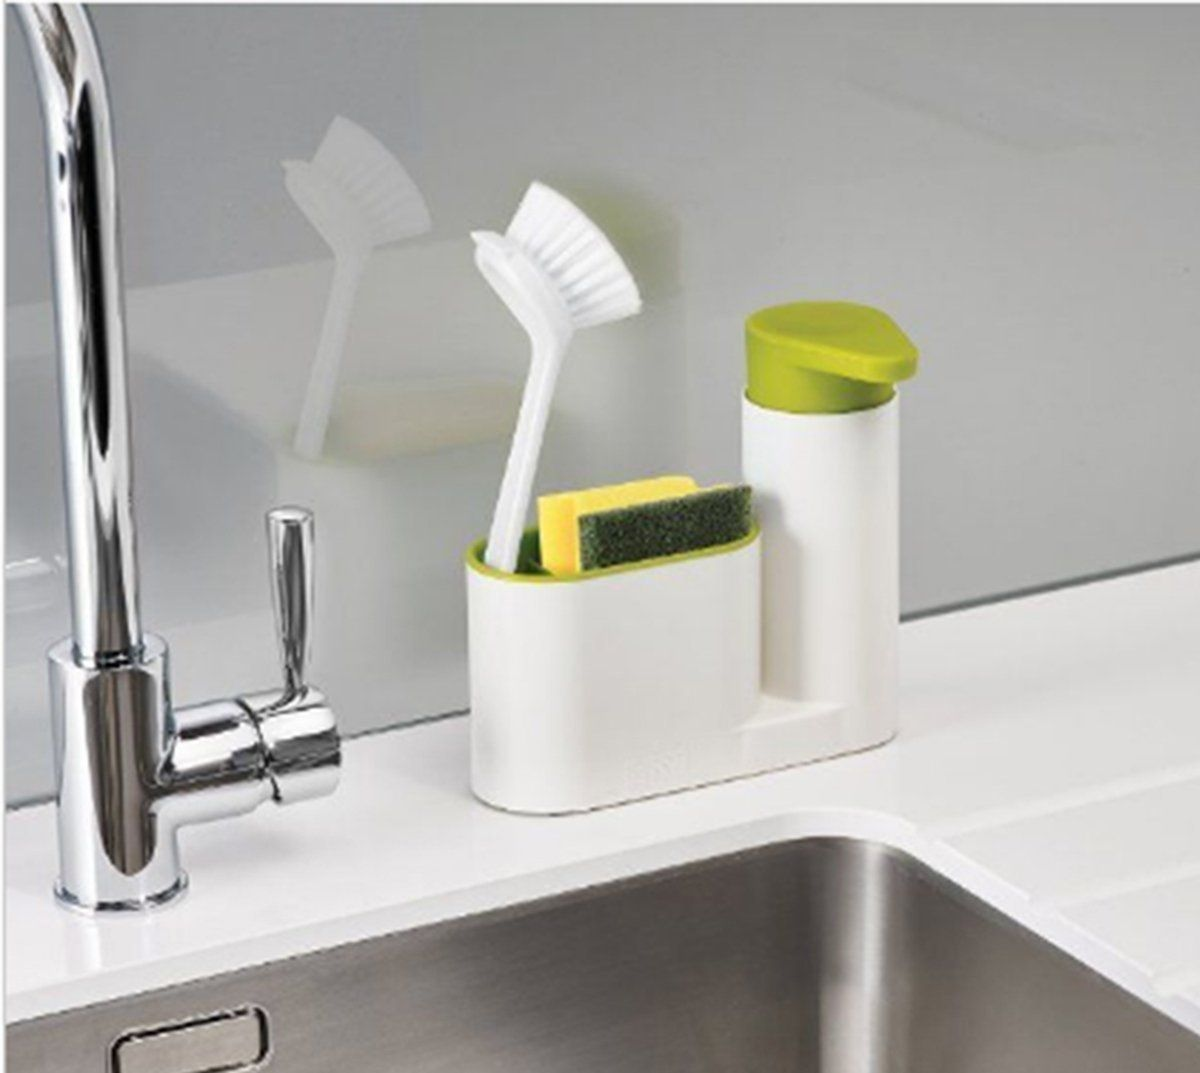 HOME CUBE® 2 IN 1 Stand For Kitchen Sink With Liquid Soap Dispenser U0026  Cleaning